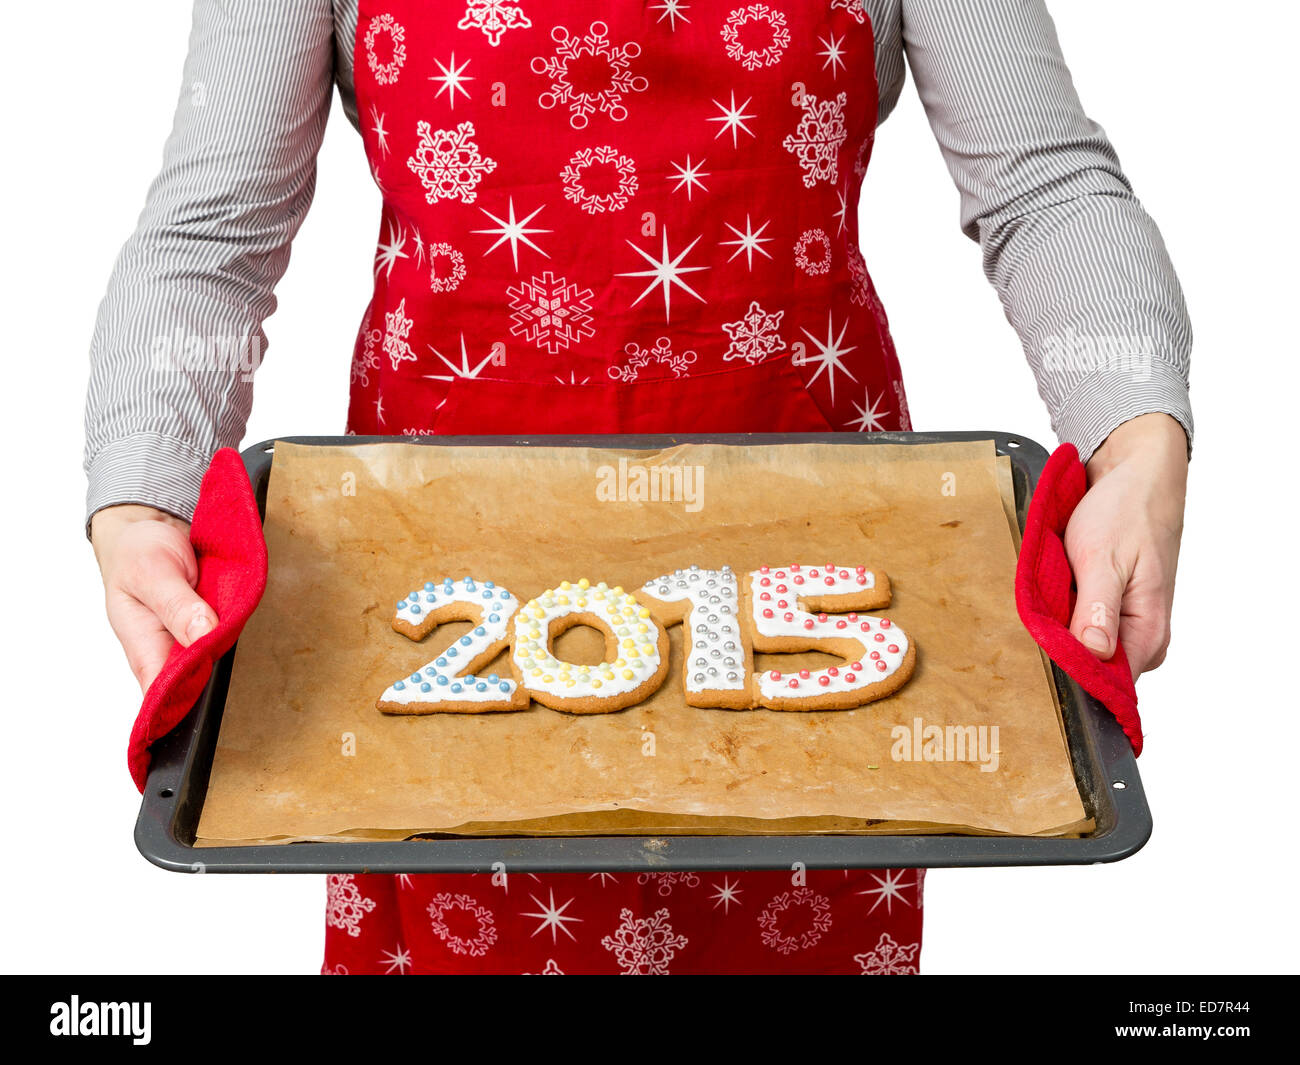 Woman wearing red apron holding home-made gingerbread cookies in shape of 2015 New Year digits on baking tray shot - Stock Image